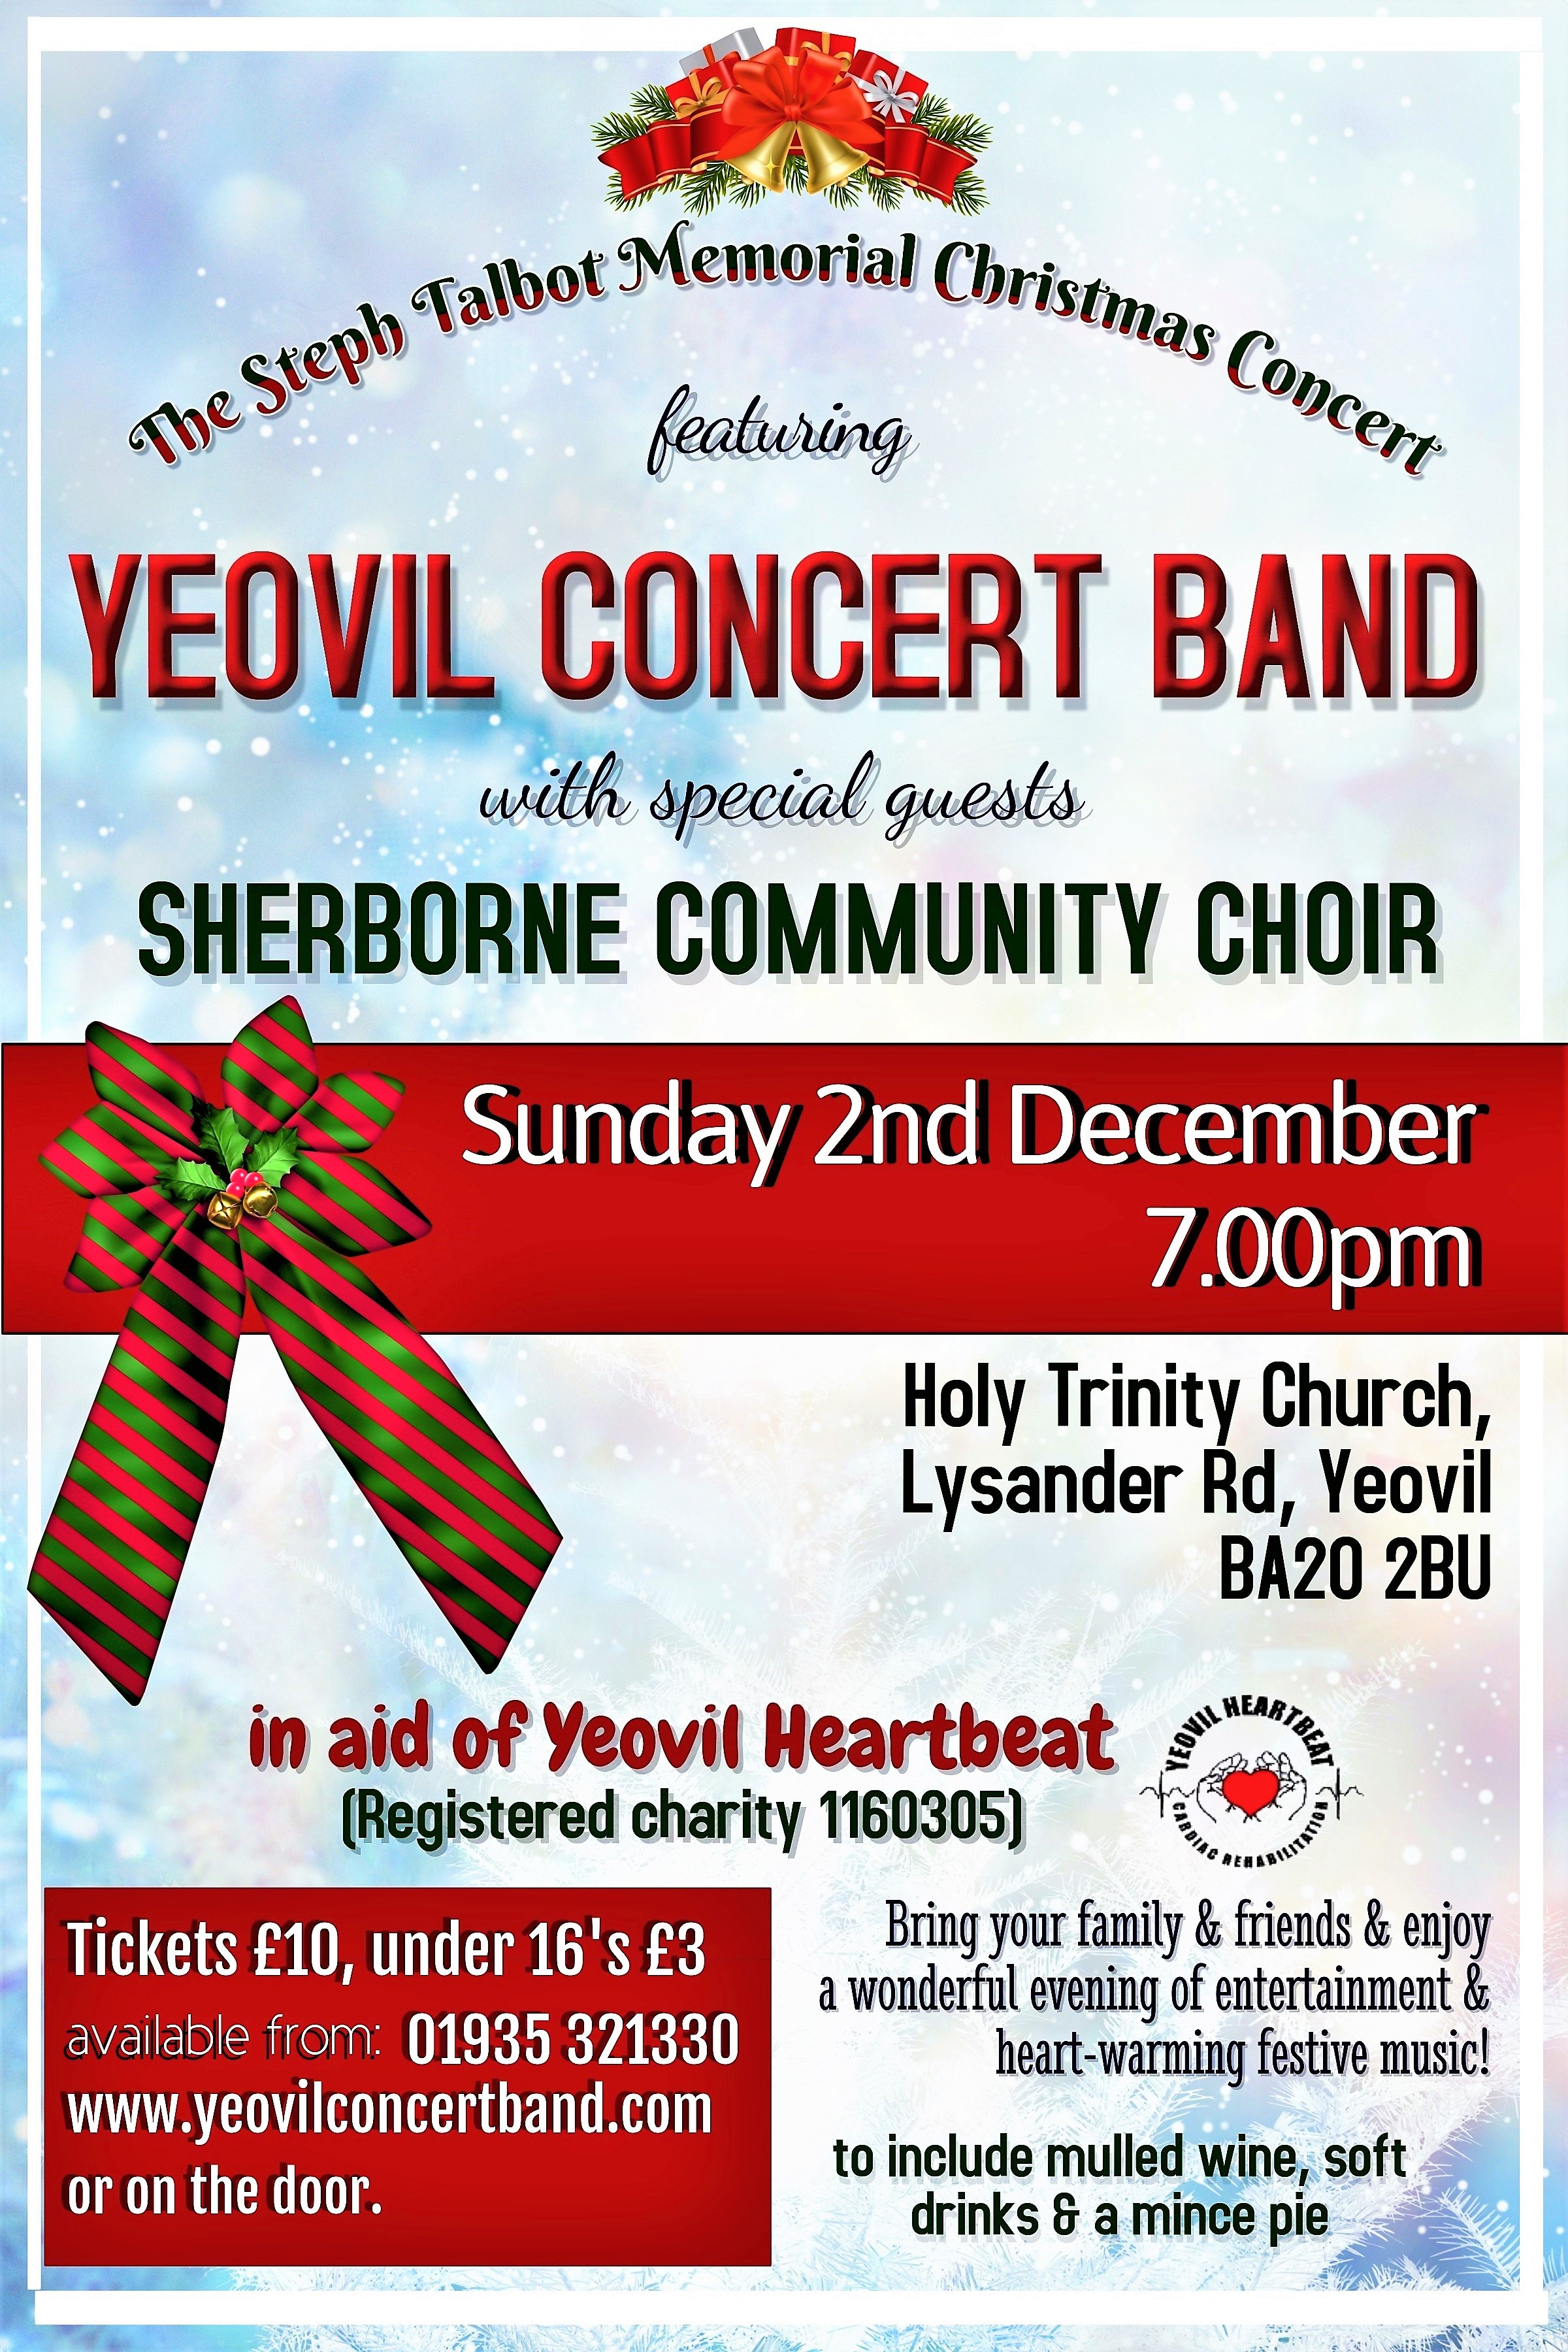 YEOVIL CONCERT BAND presents a Charity Christmas Concert